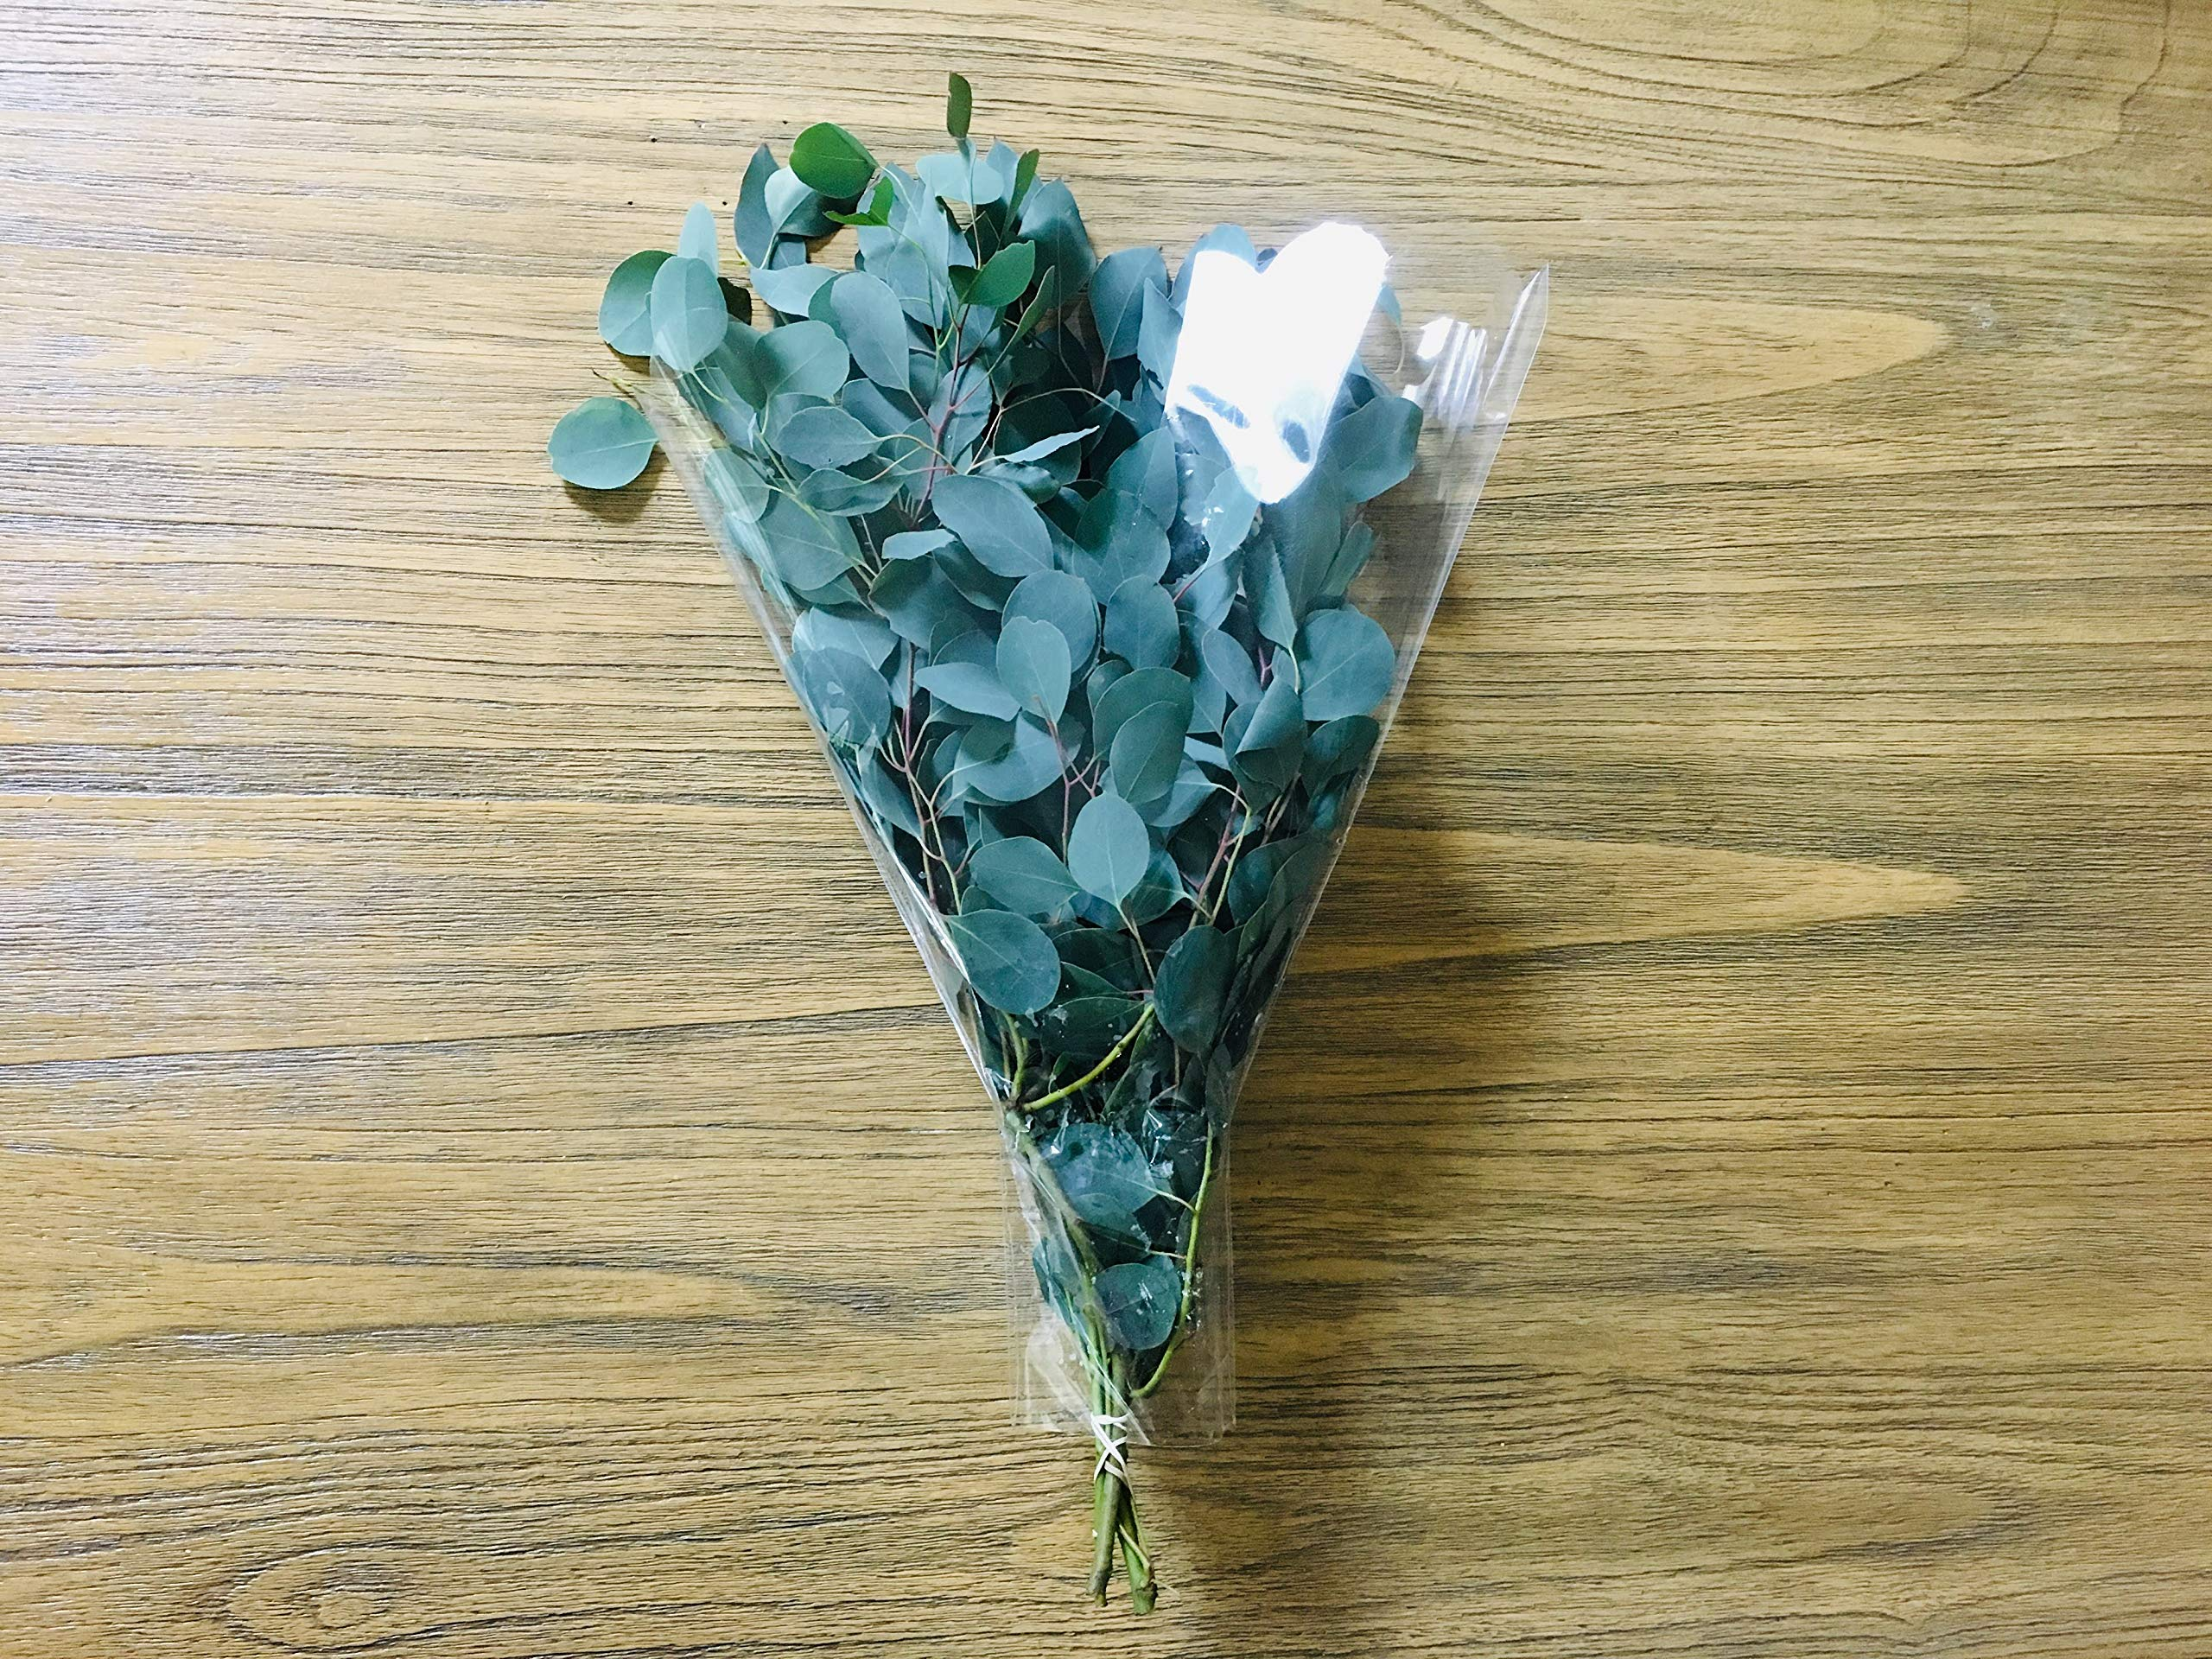 Fresh Eucalyptus Wedding Flower, Silver Dollar Eucalyptus Bunch, Herbal Bouquet, Event, Wedding - Wholesale 1/2lbs to 5lbs (5lbs = 10 Bunches)